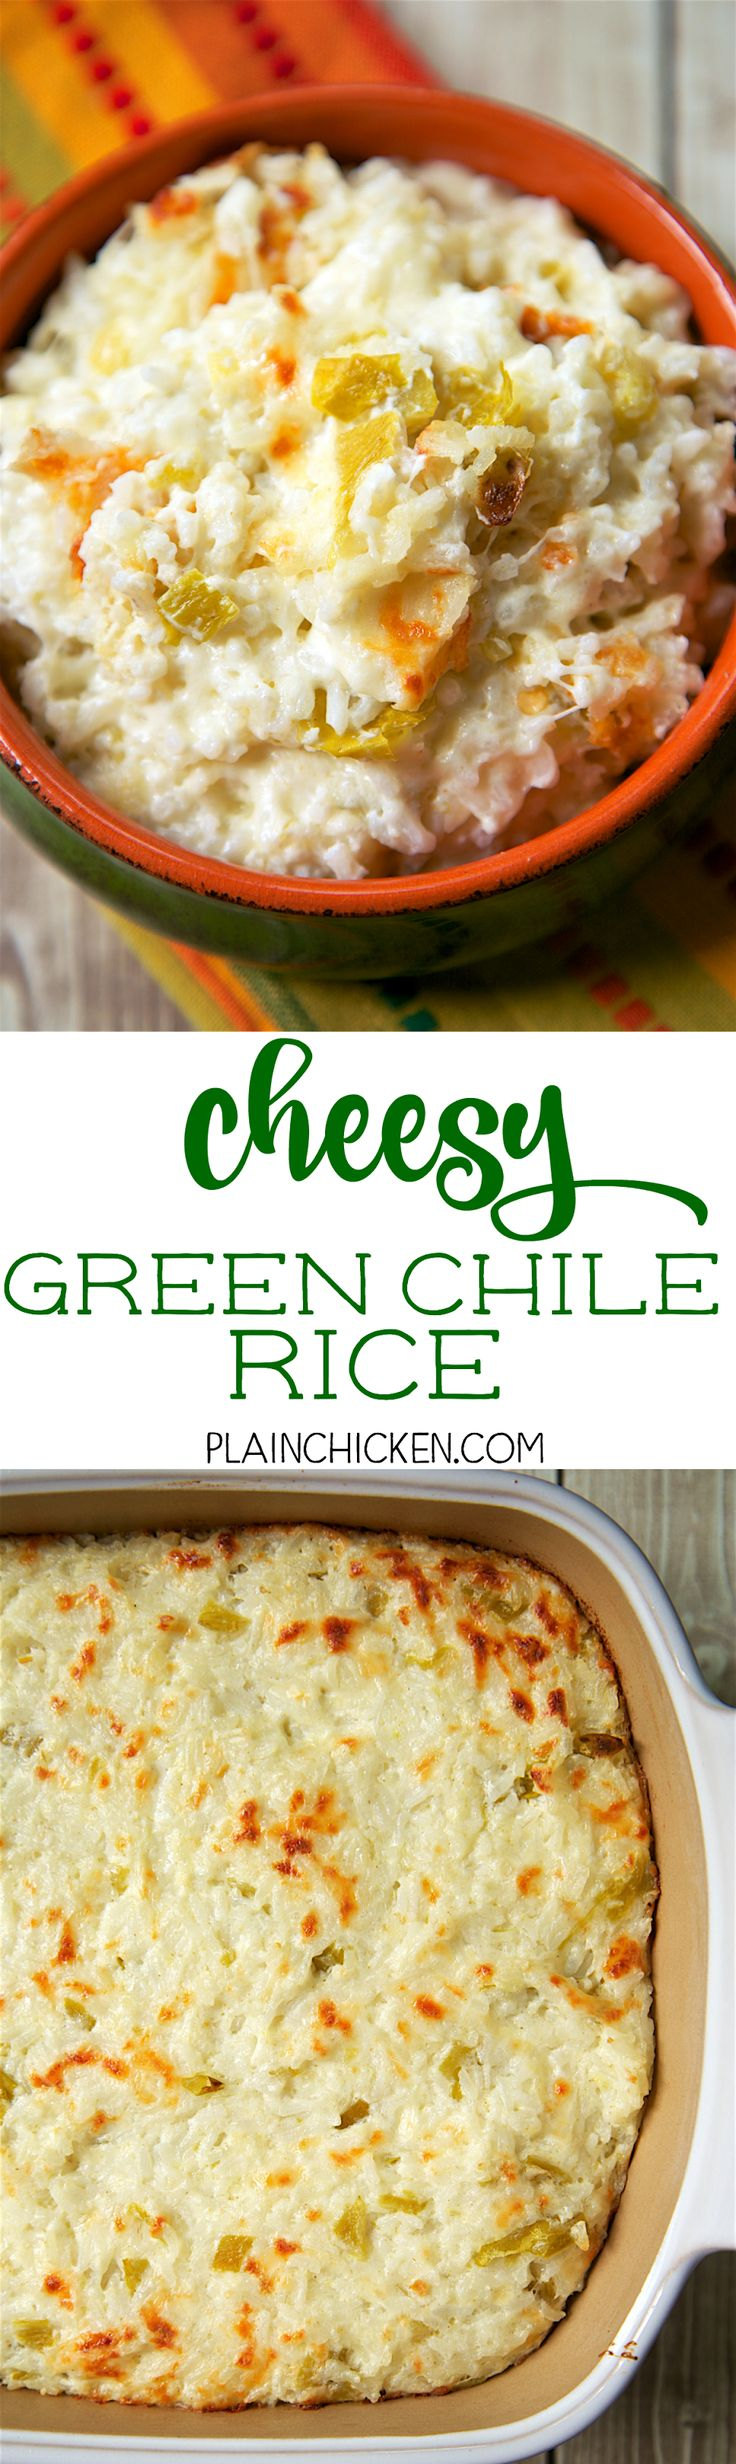 Cheesy Green Chile Rice - only 4 ingredients. Rice, mozzarella, sour cream and green chiles. This rice is THE BEST! So simple, but SO delicious! Everyone went back for seconds. A new favorite!! LOVE this quick and easy Mexican side dish recipe.